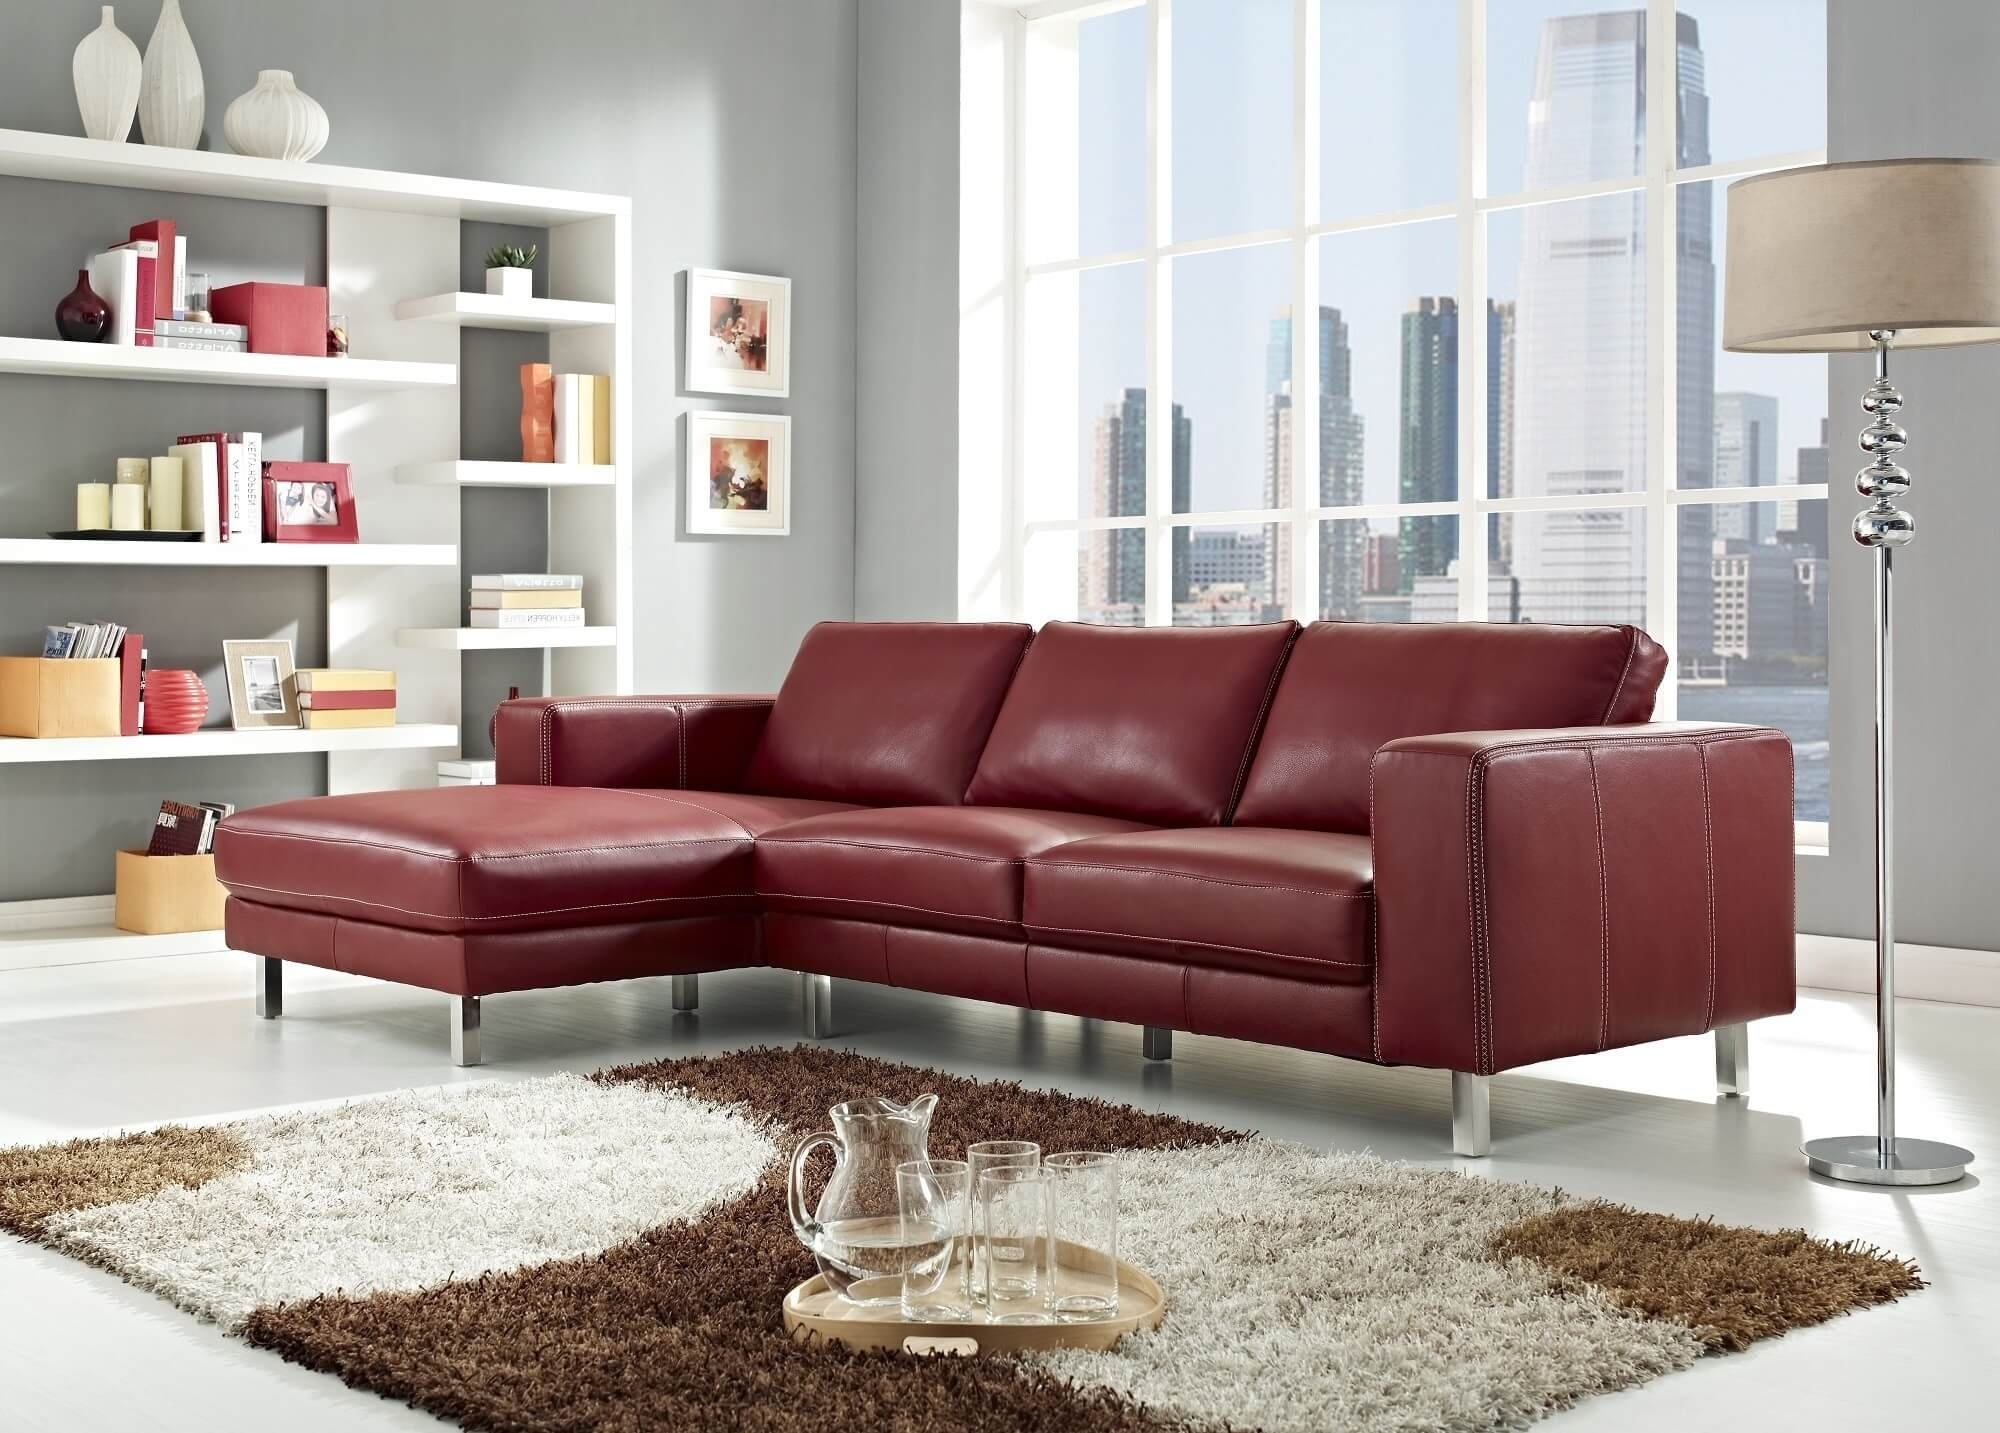 Stylish Modern Red Sectional Sofas Pertaining To Small Red Leather Sectional Sofas (Image 9 of 10)